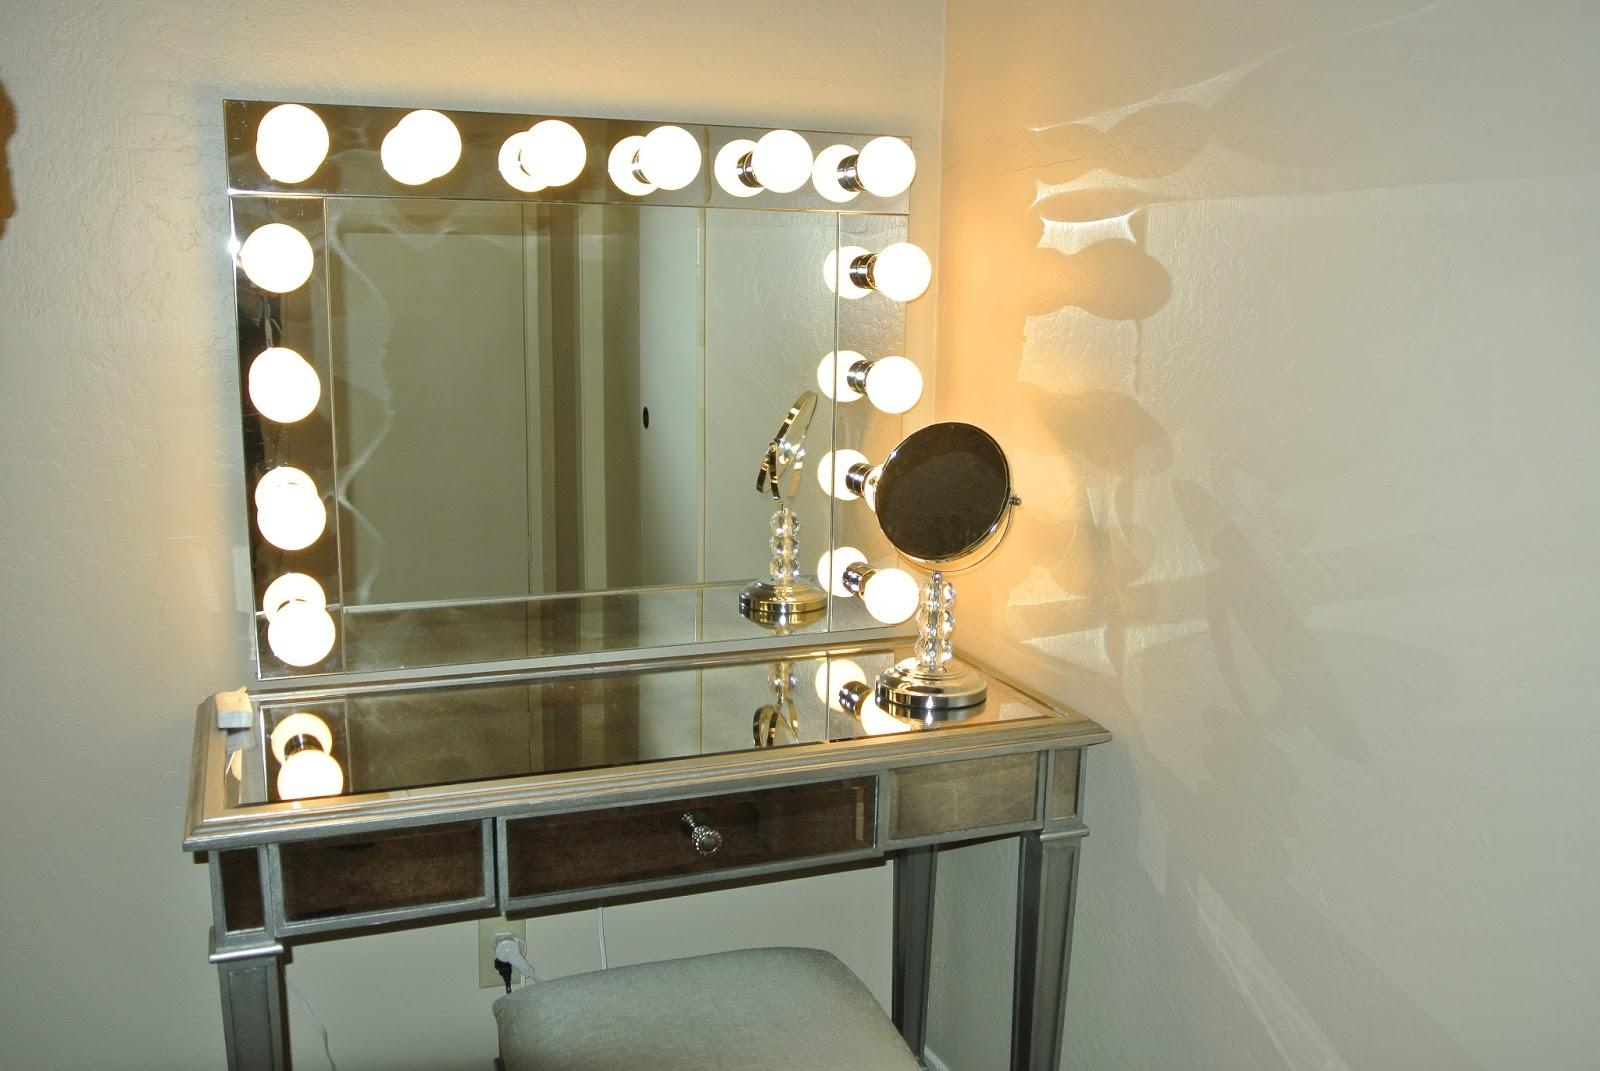 Find And Save Vanity Wall Mirror Lighted Costco Bathroom | Master With Lighted Vanity Wall Mirrors (Image 7 of 20)